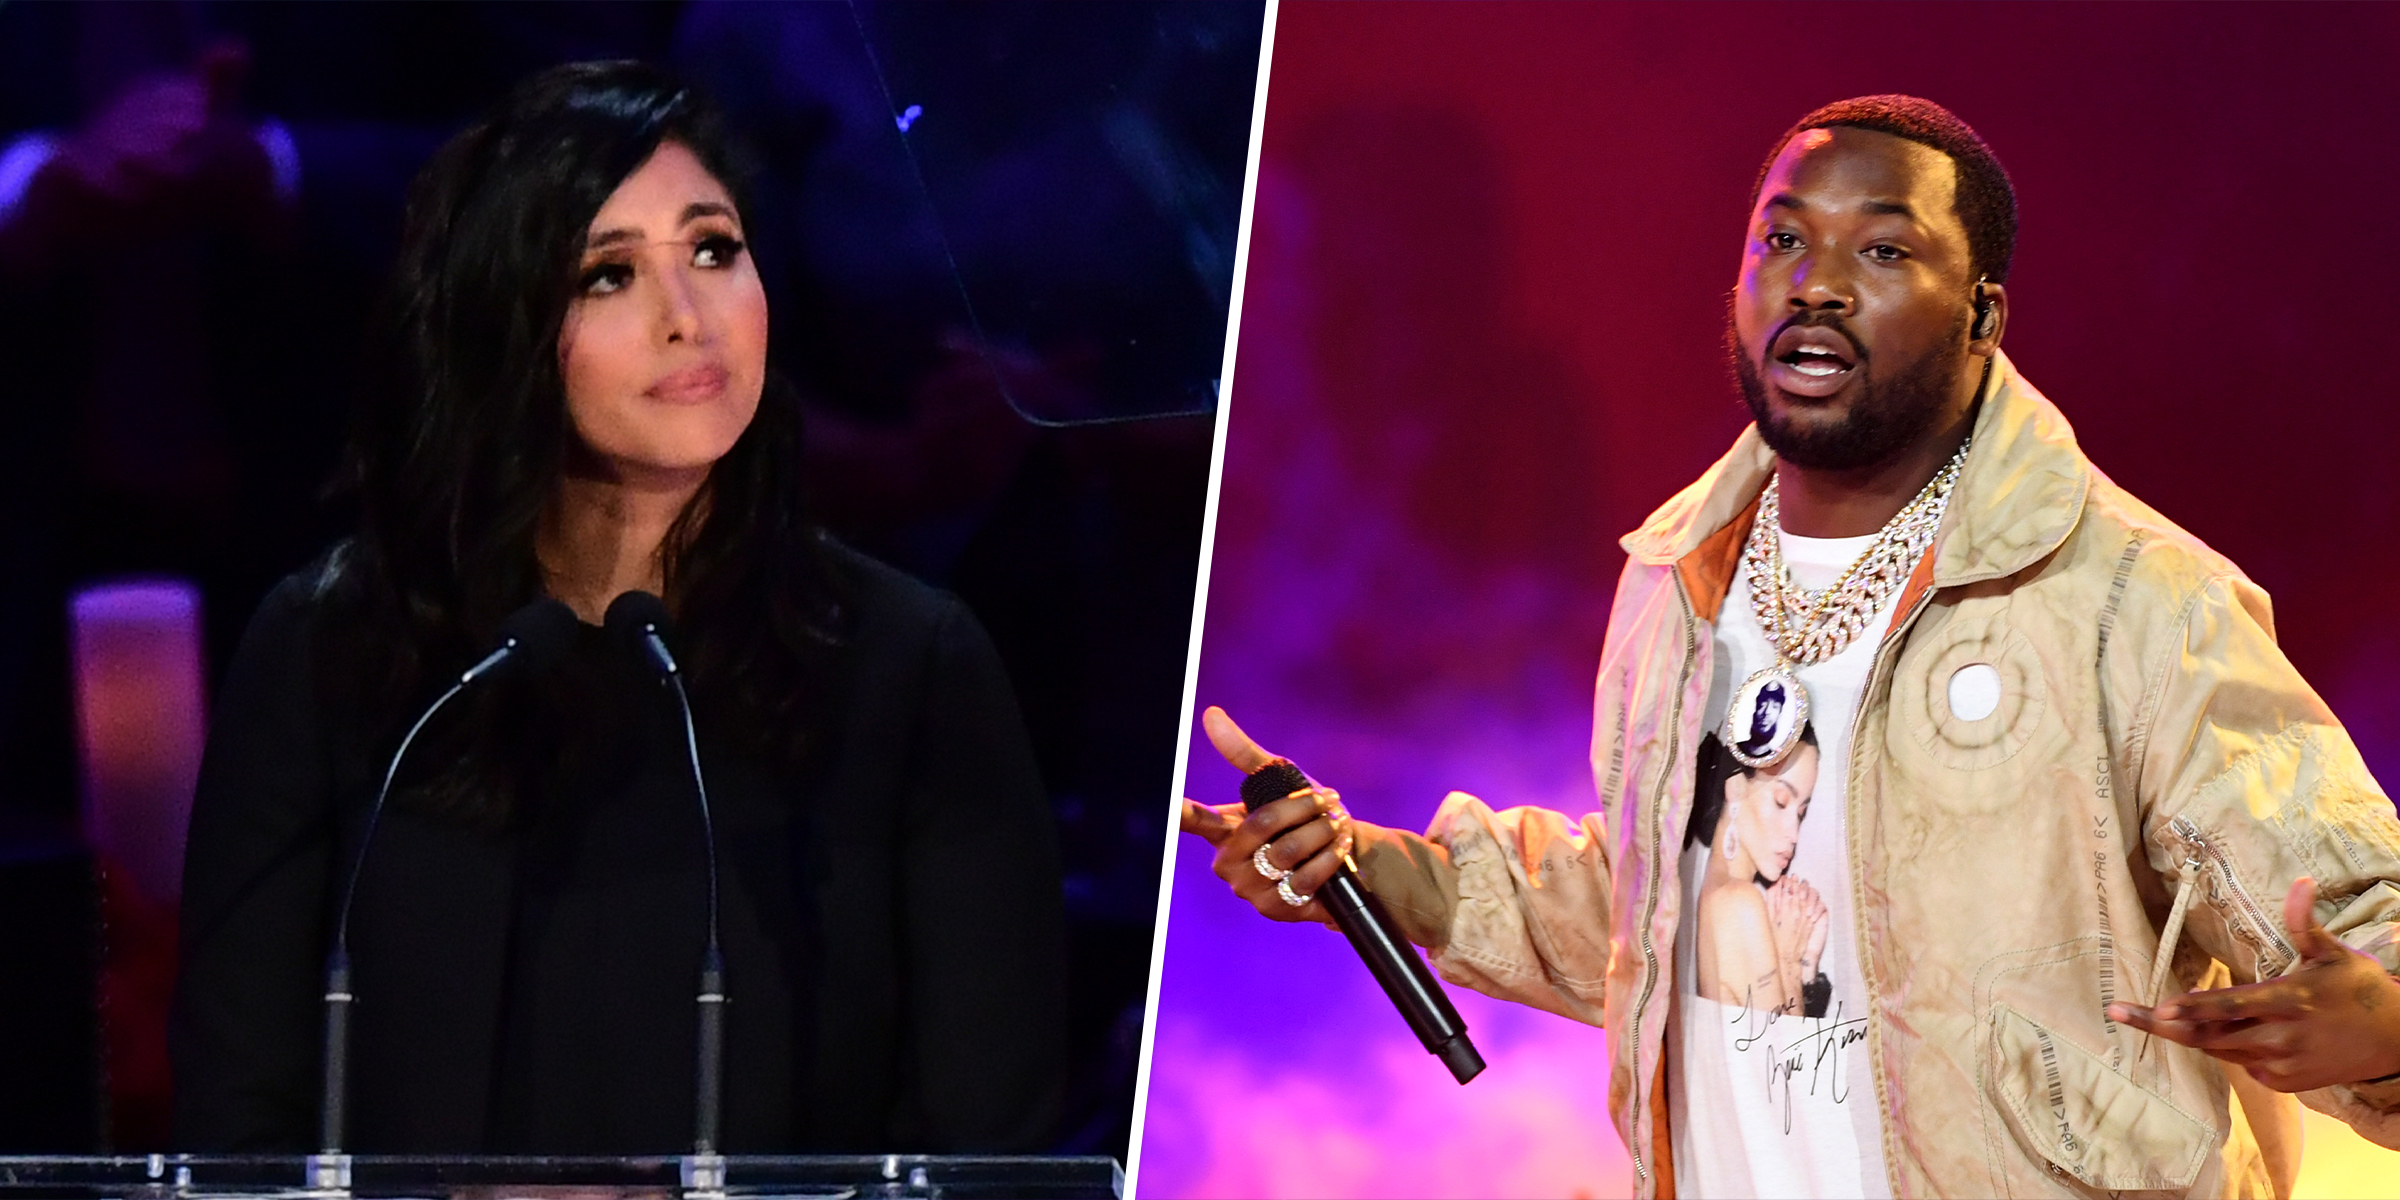 Vanessa Bryant called out rapper Meek Mill for a reference to Kobe Bryant.